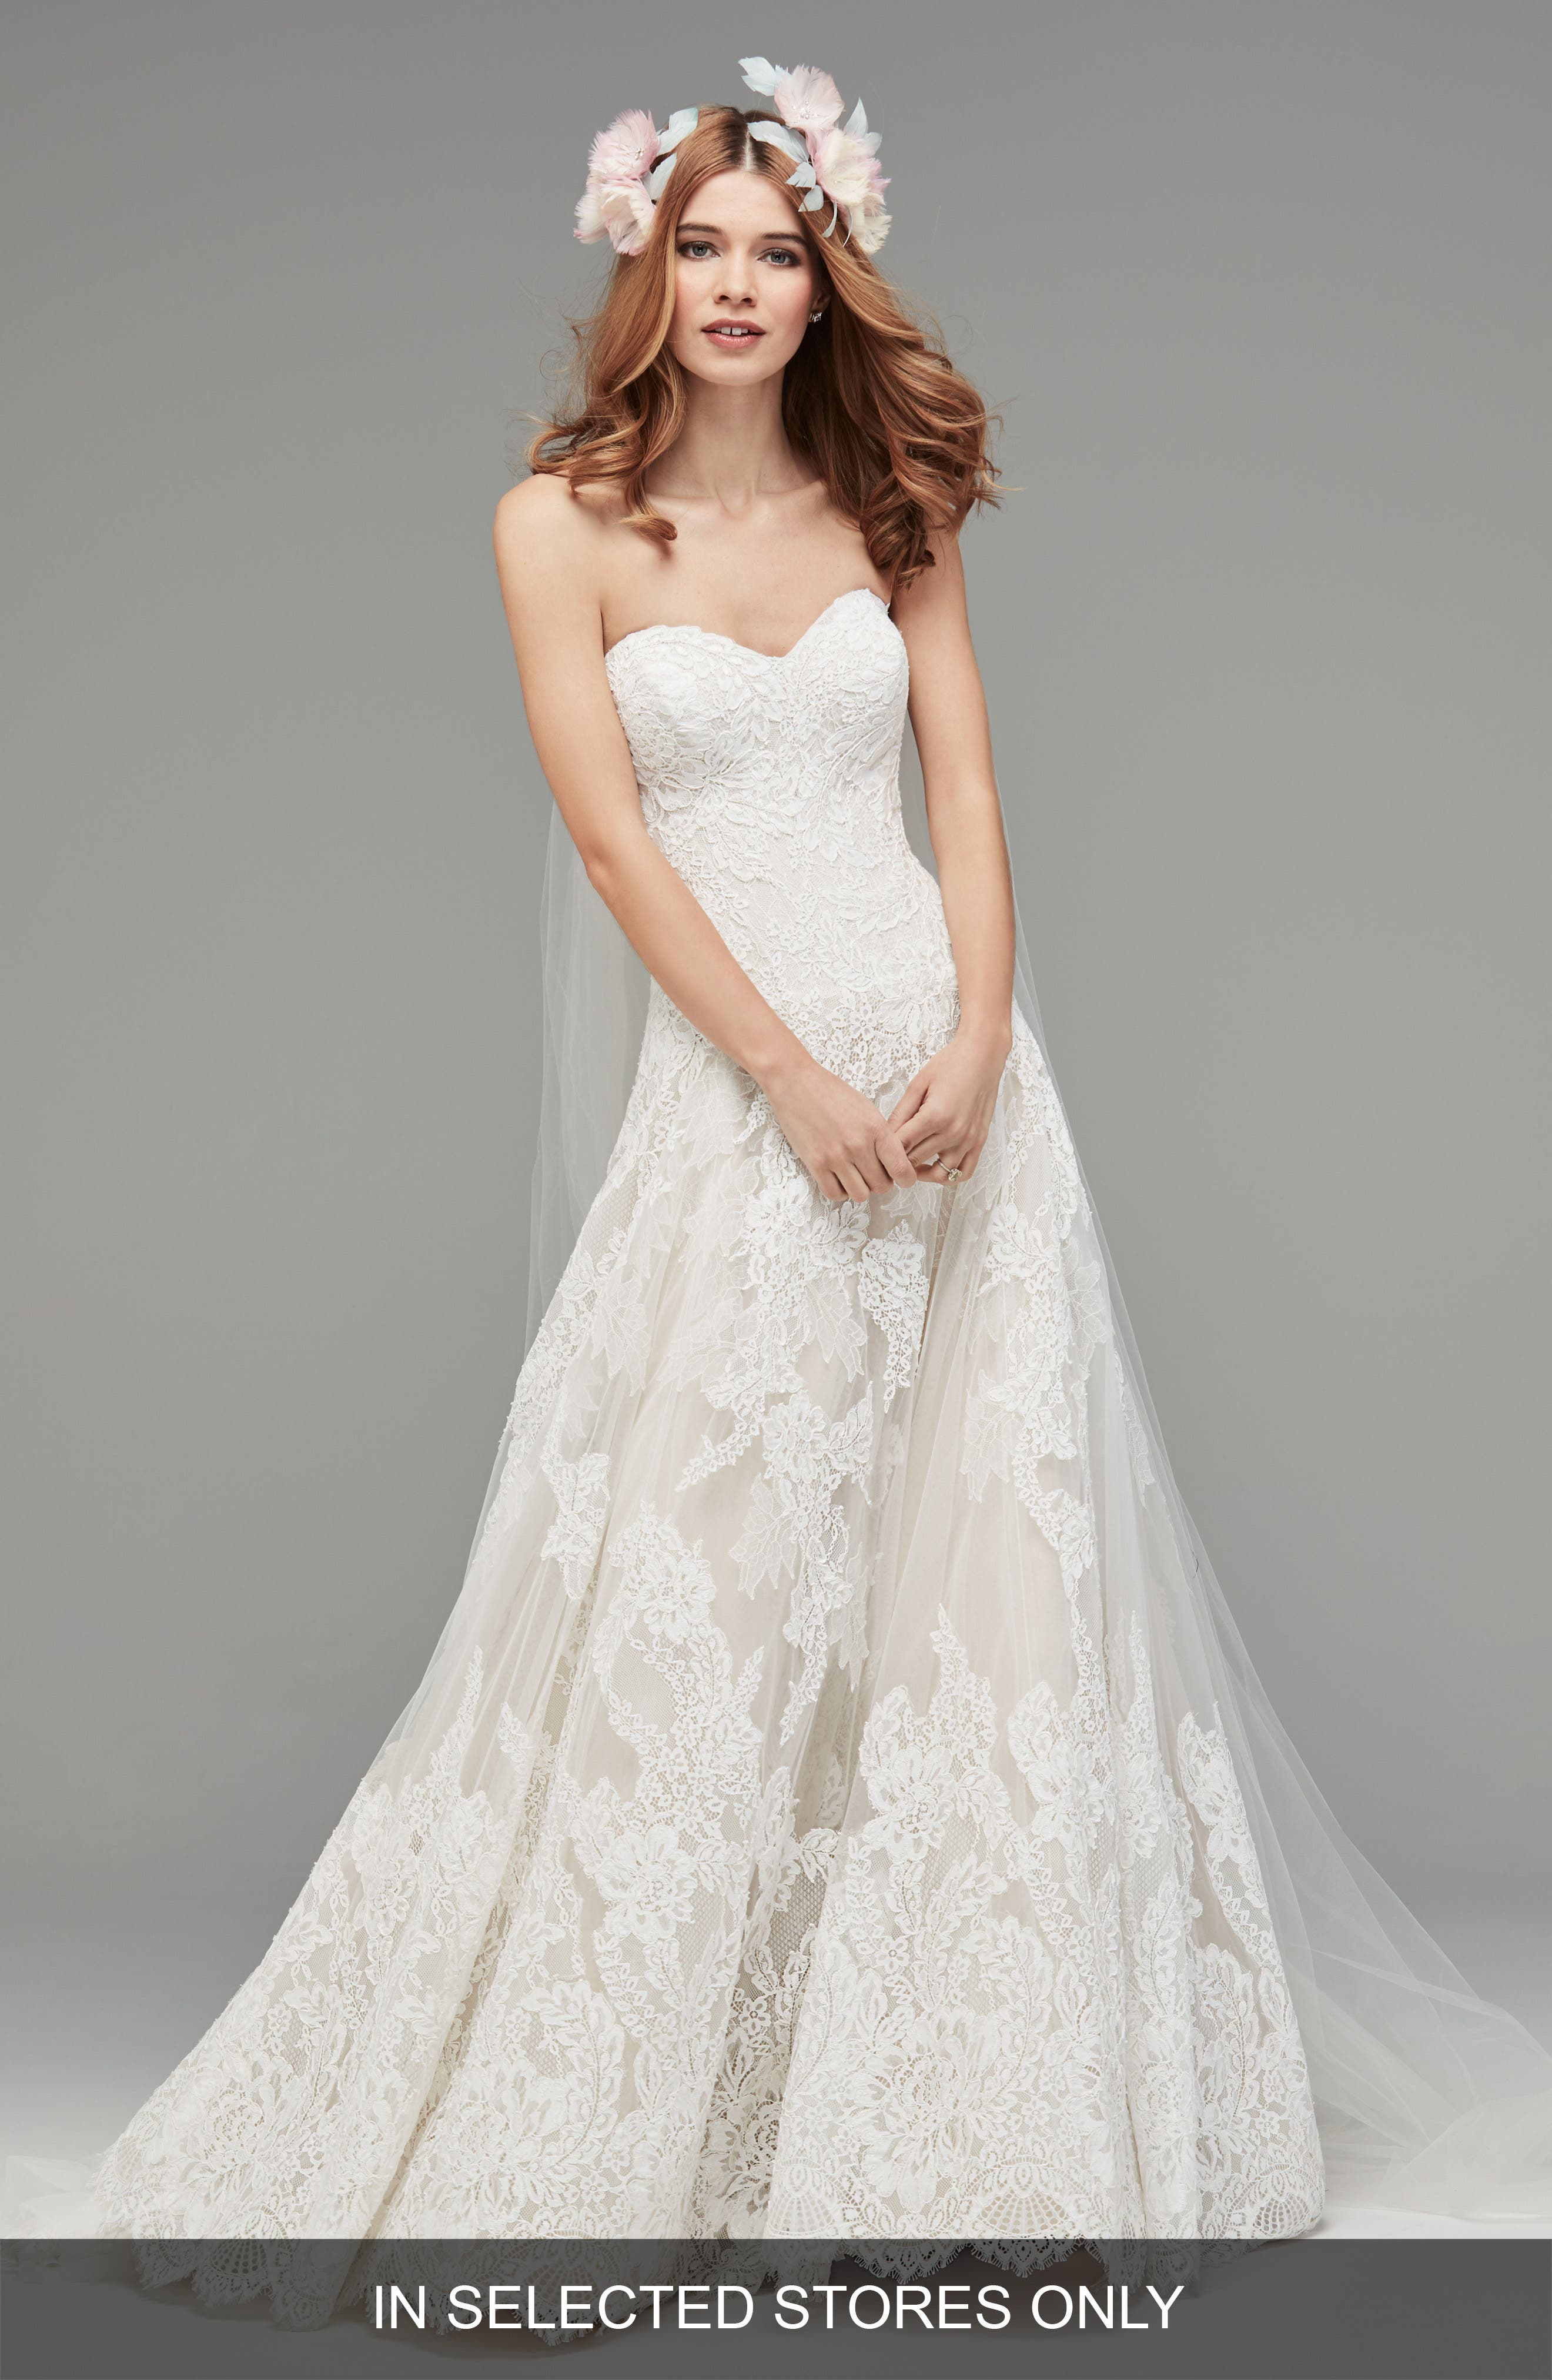 Lyric Strapless Lace Drop Waist Gown,                             Main thumbnail 1, color,                             Ivory/Nude